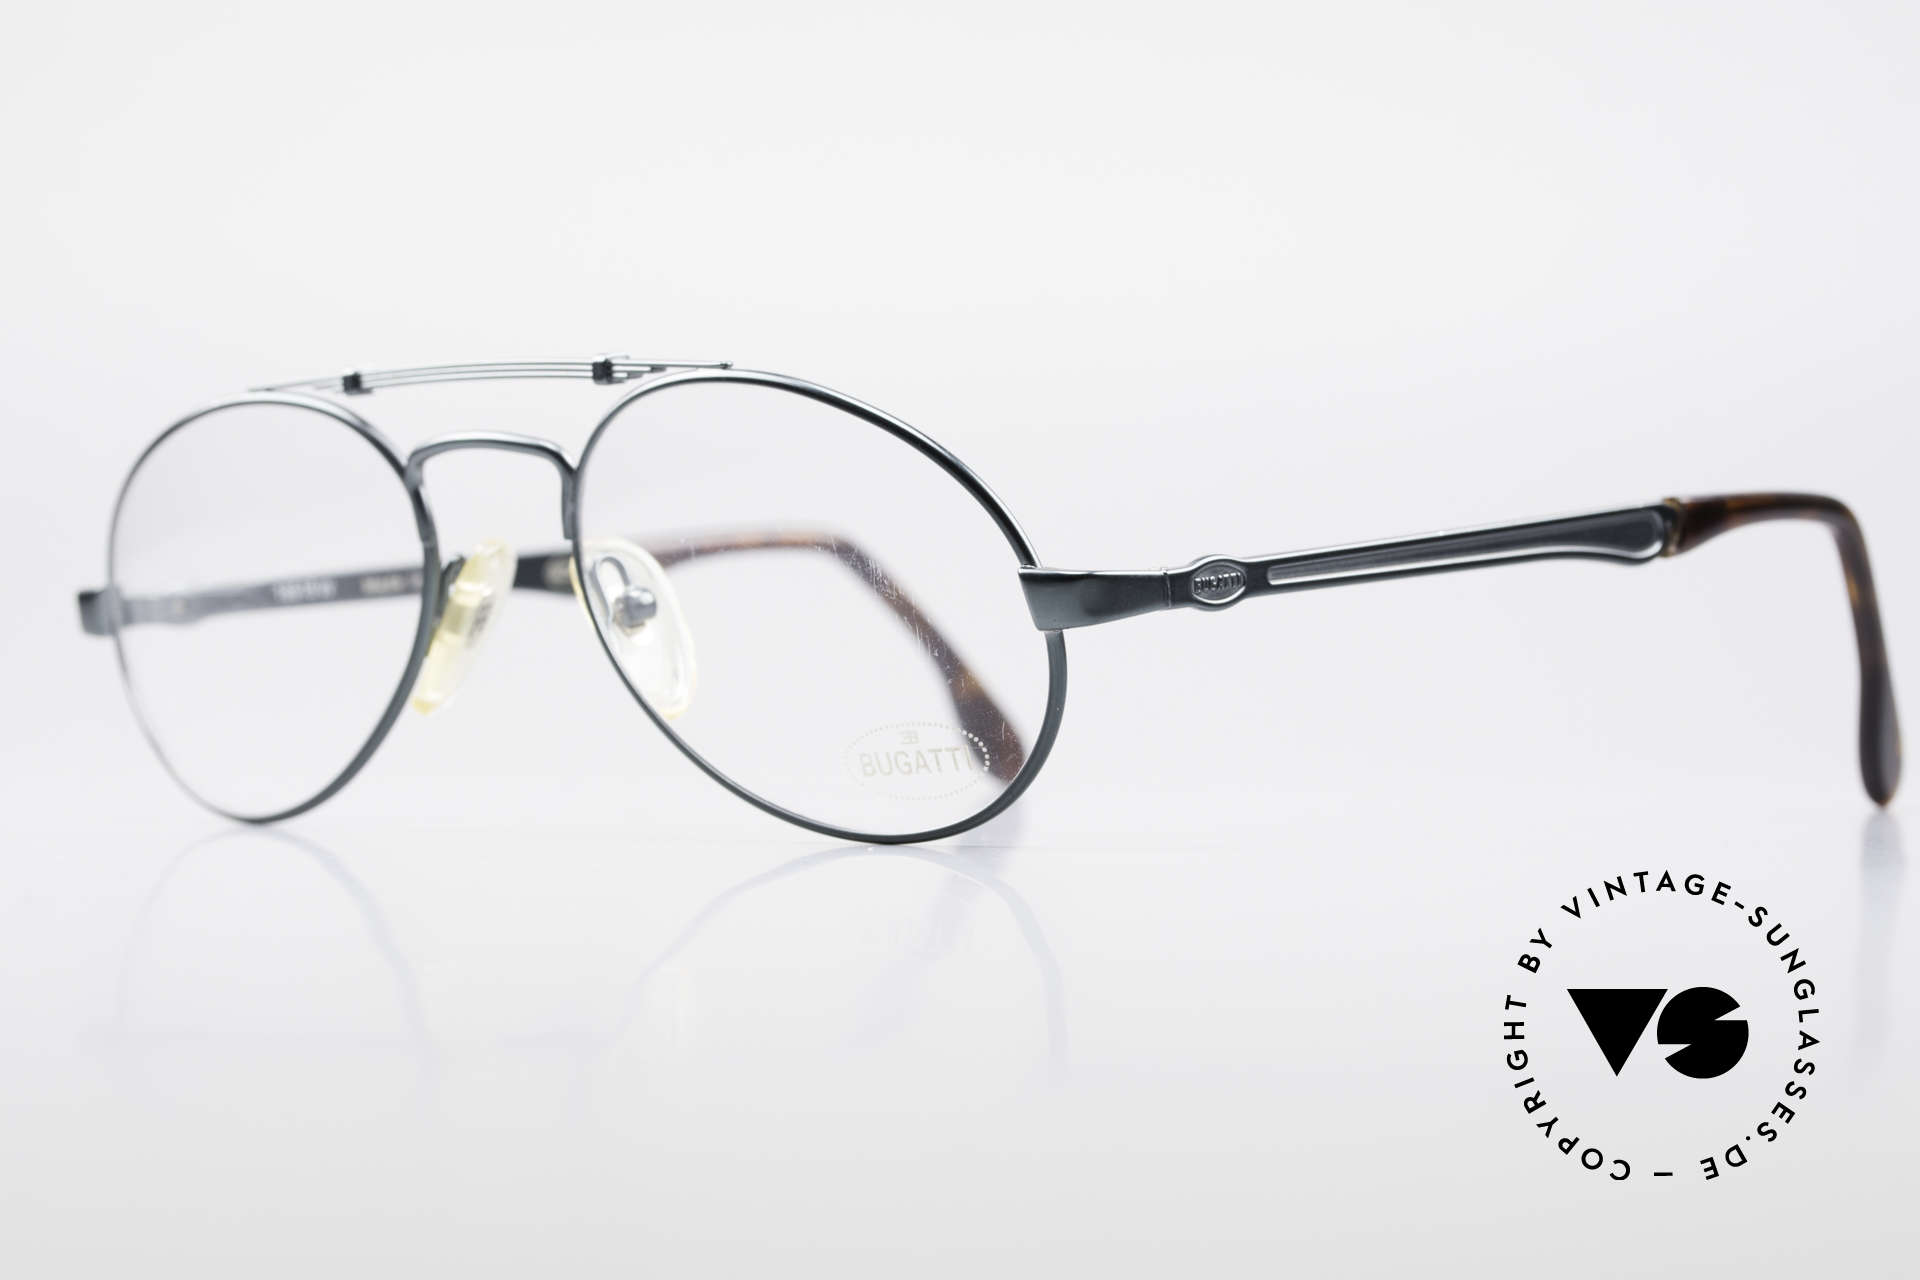 Bugatti 16918 Luxury 80's Eyeglass-Frame, frame (brow bar) is shaped like an old leaf spring, Made for Men